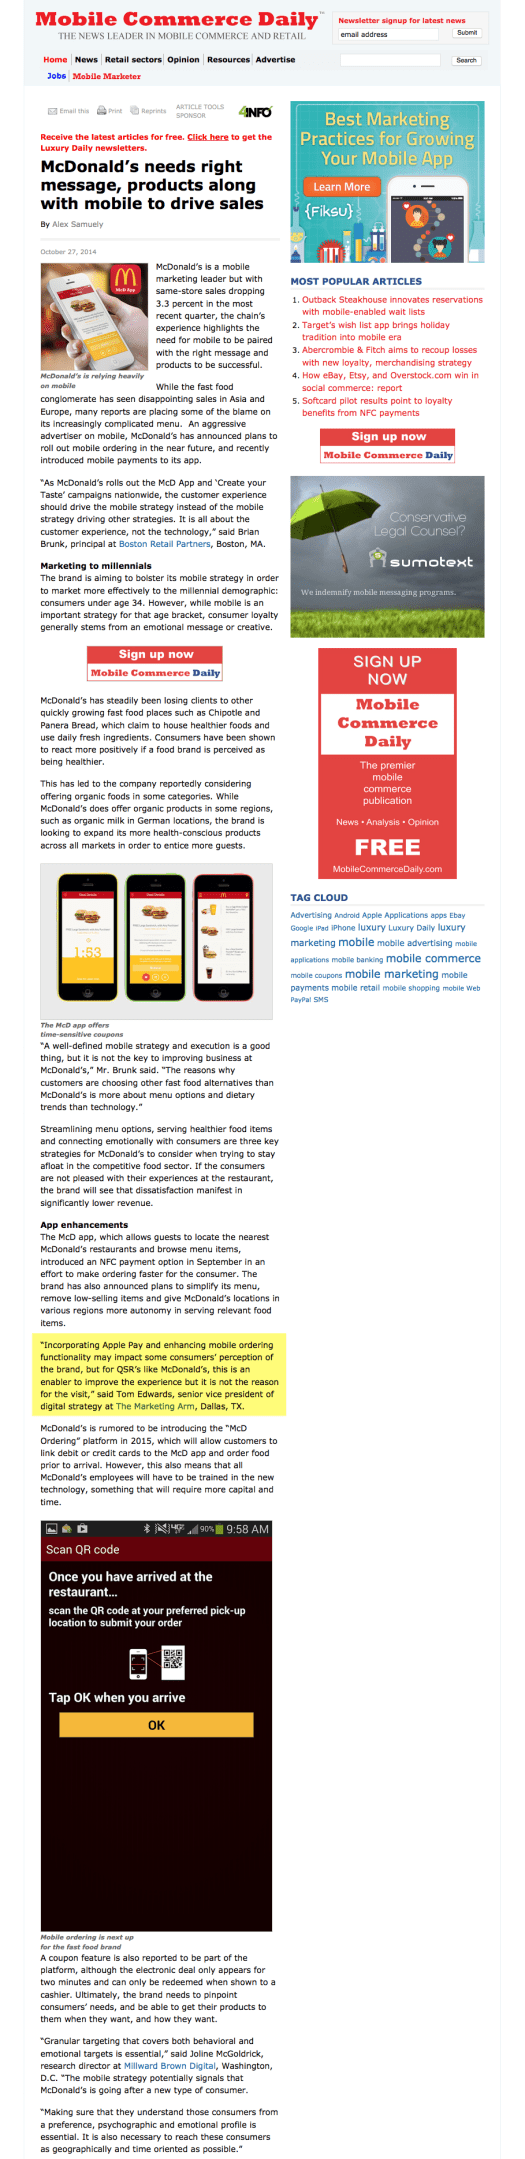 McDonald's needs right message, products along with mobile to drive sales - Mobile Commerce Daily - Strategy 2014-11-09 21-33-16